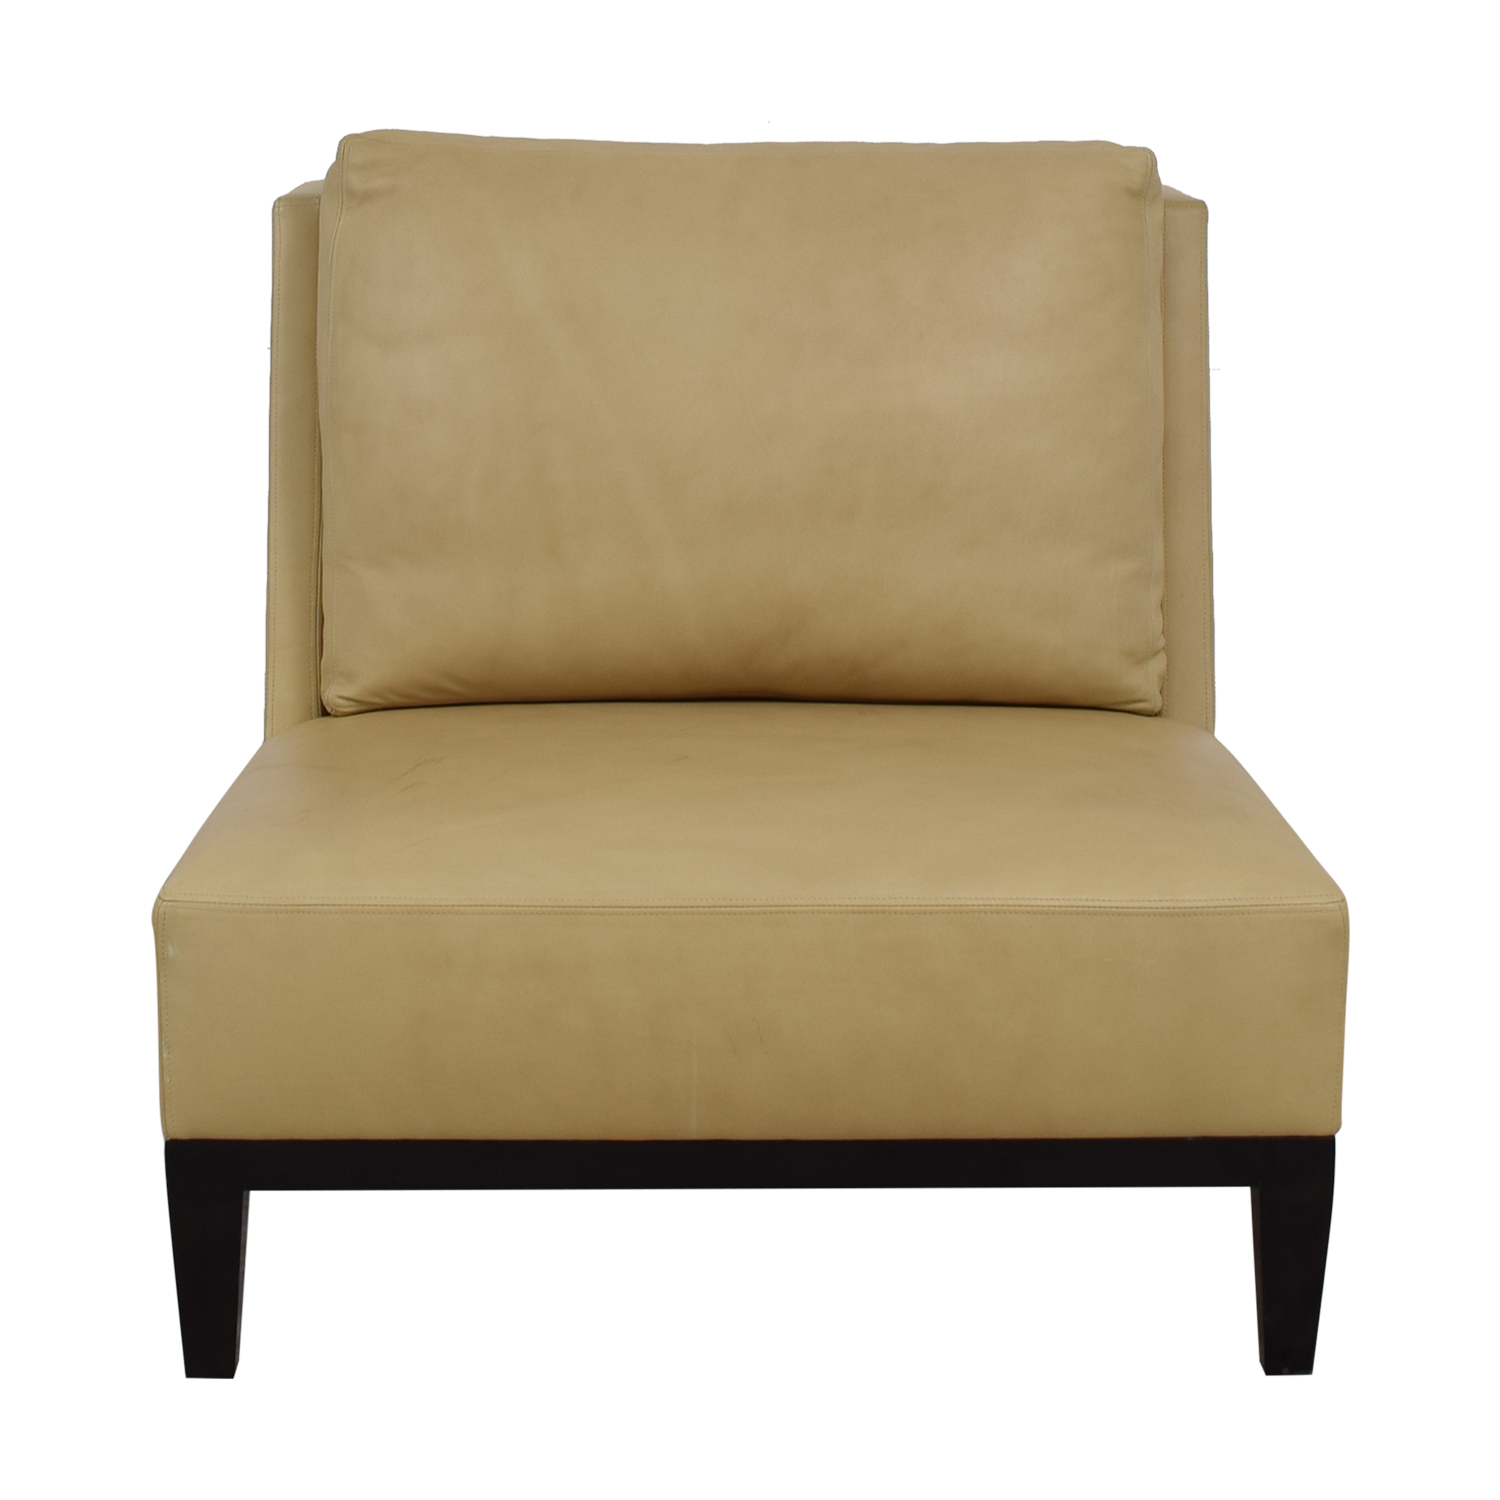 Furniture Masters Furniture Masters Tan Accent Chair on sale